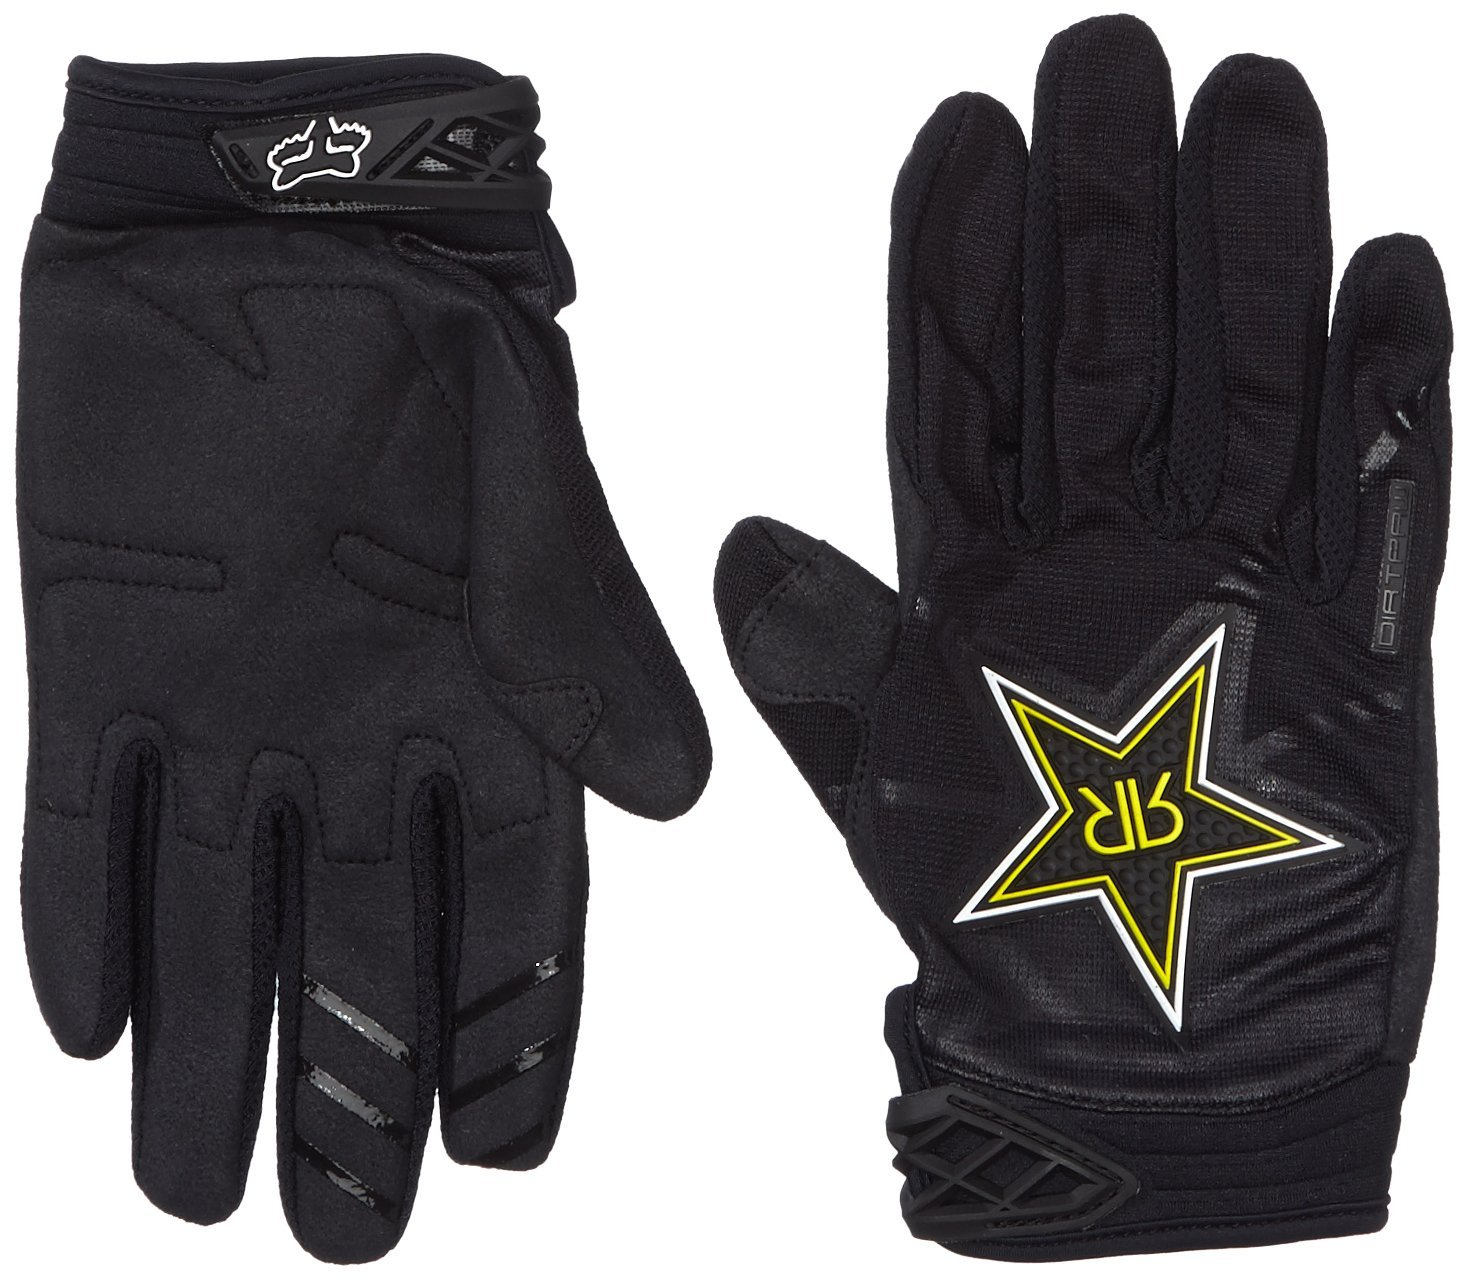 Fox Racing Dirtpaw Rockstar Men's Dirt Bike Motorcycle Gloves - Black / Small